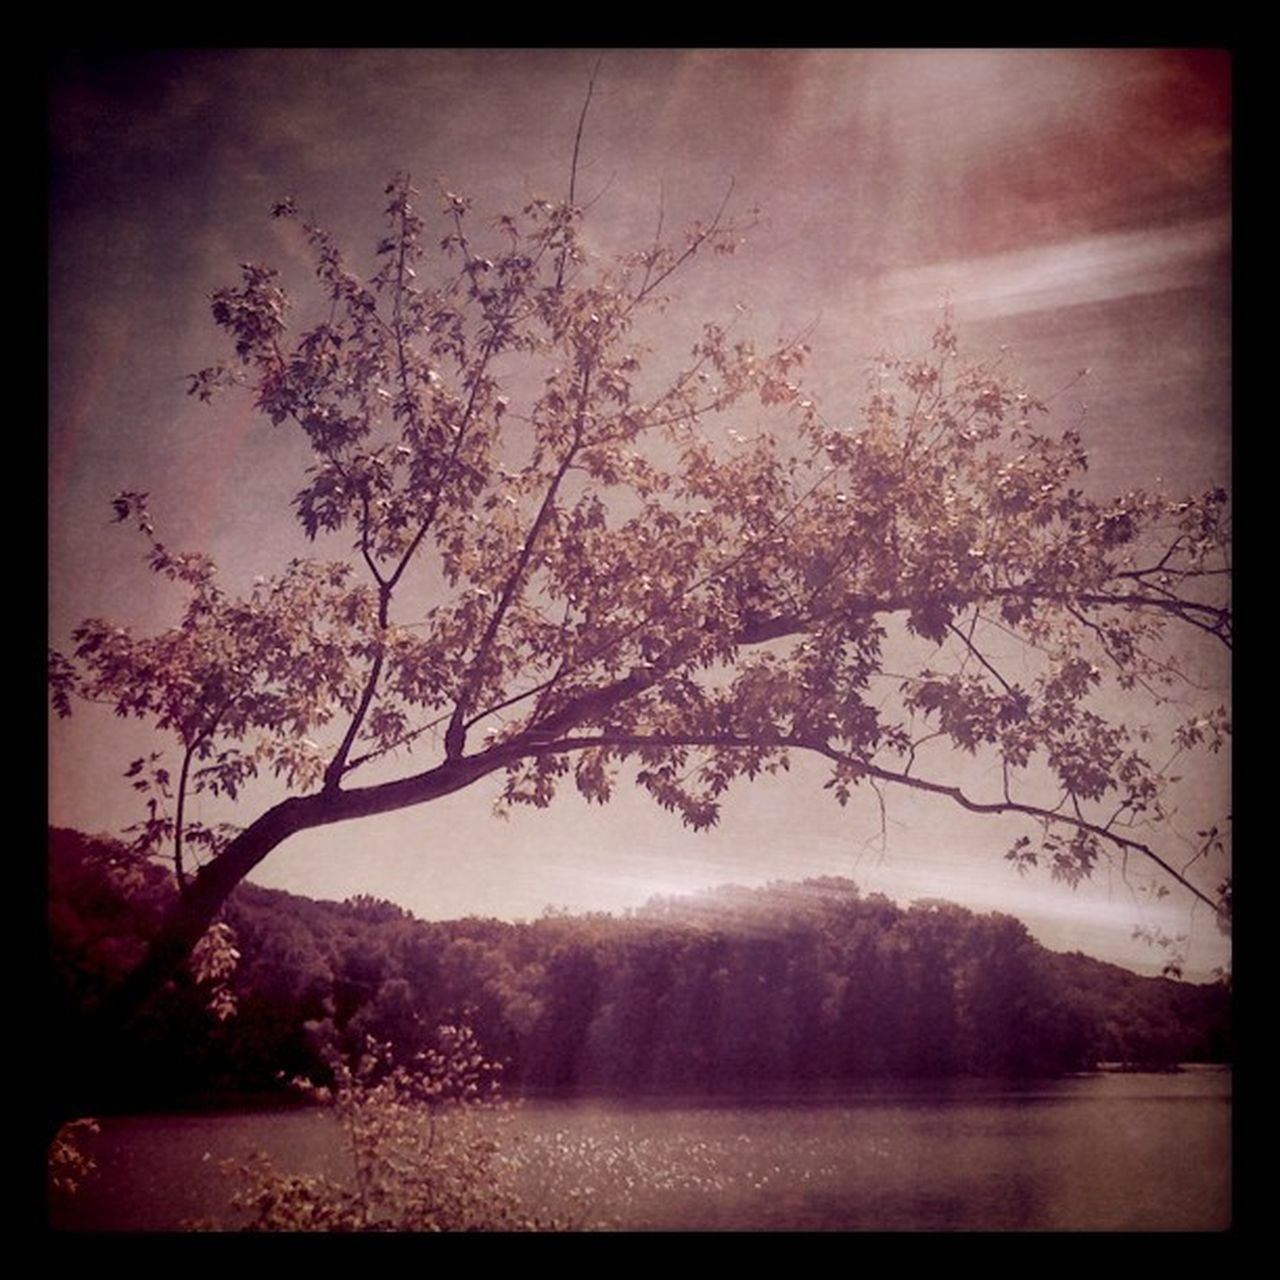 tree, beauty in nature, nature, branch, tranquility, no people, scenics, lake, flower, tranquil scene, water, sky, outdoors, growth, day, fragility, freshness